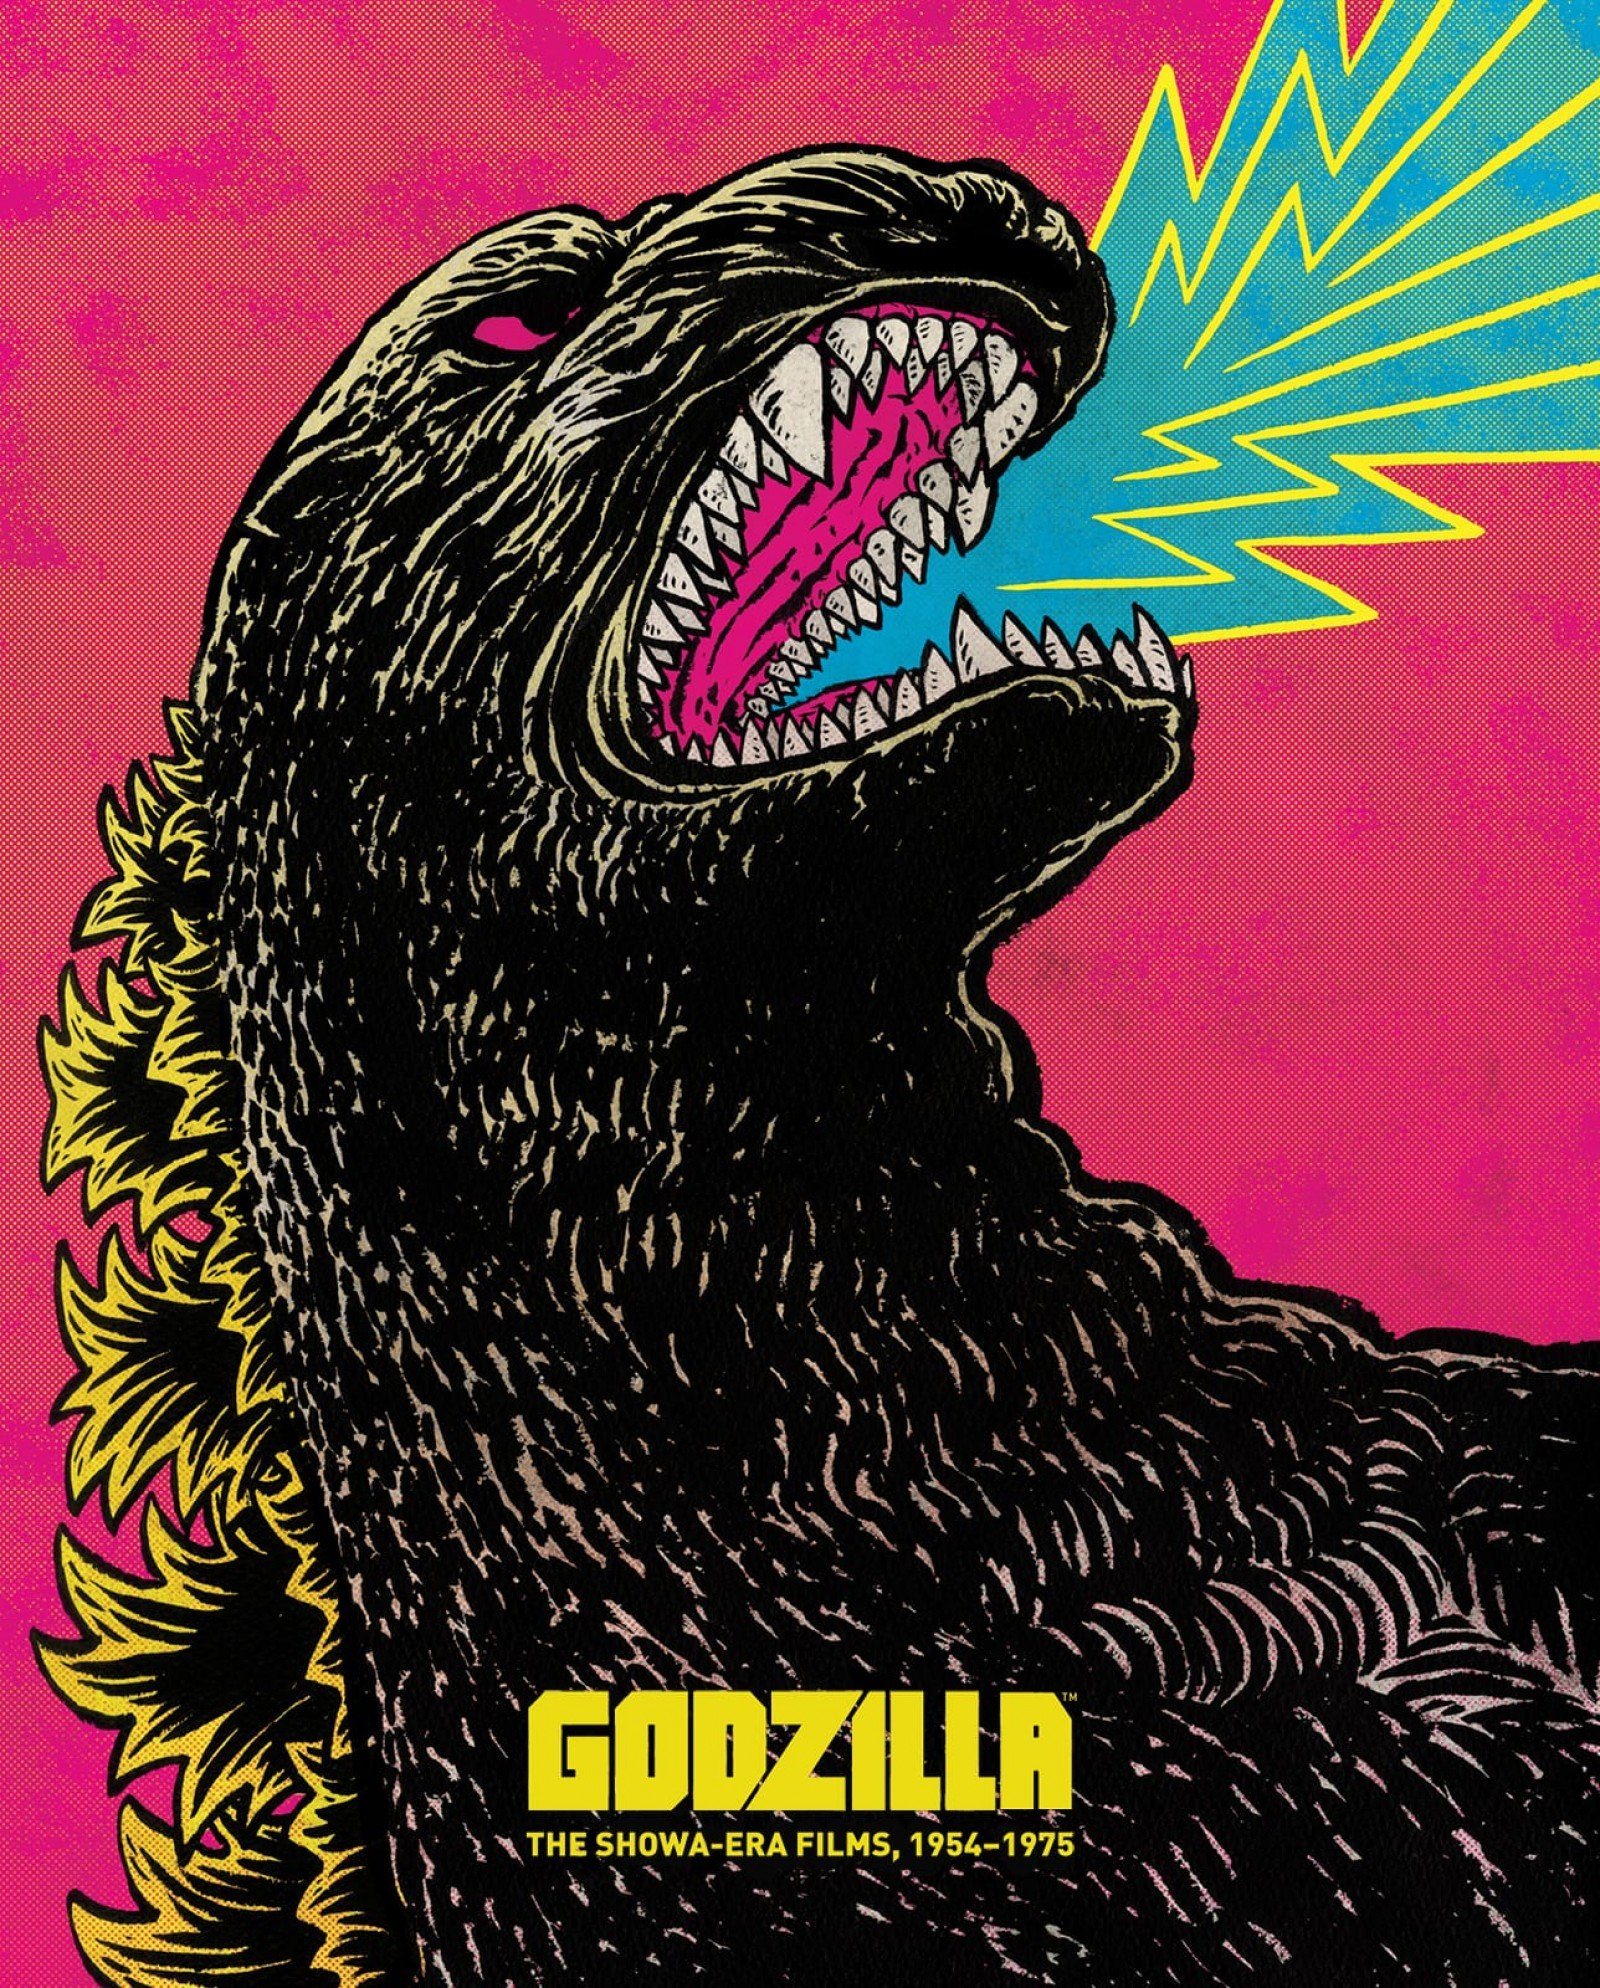 Godzilla: The Showa-Era Films 1954-1975